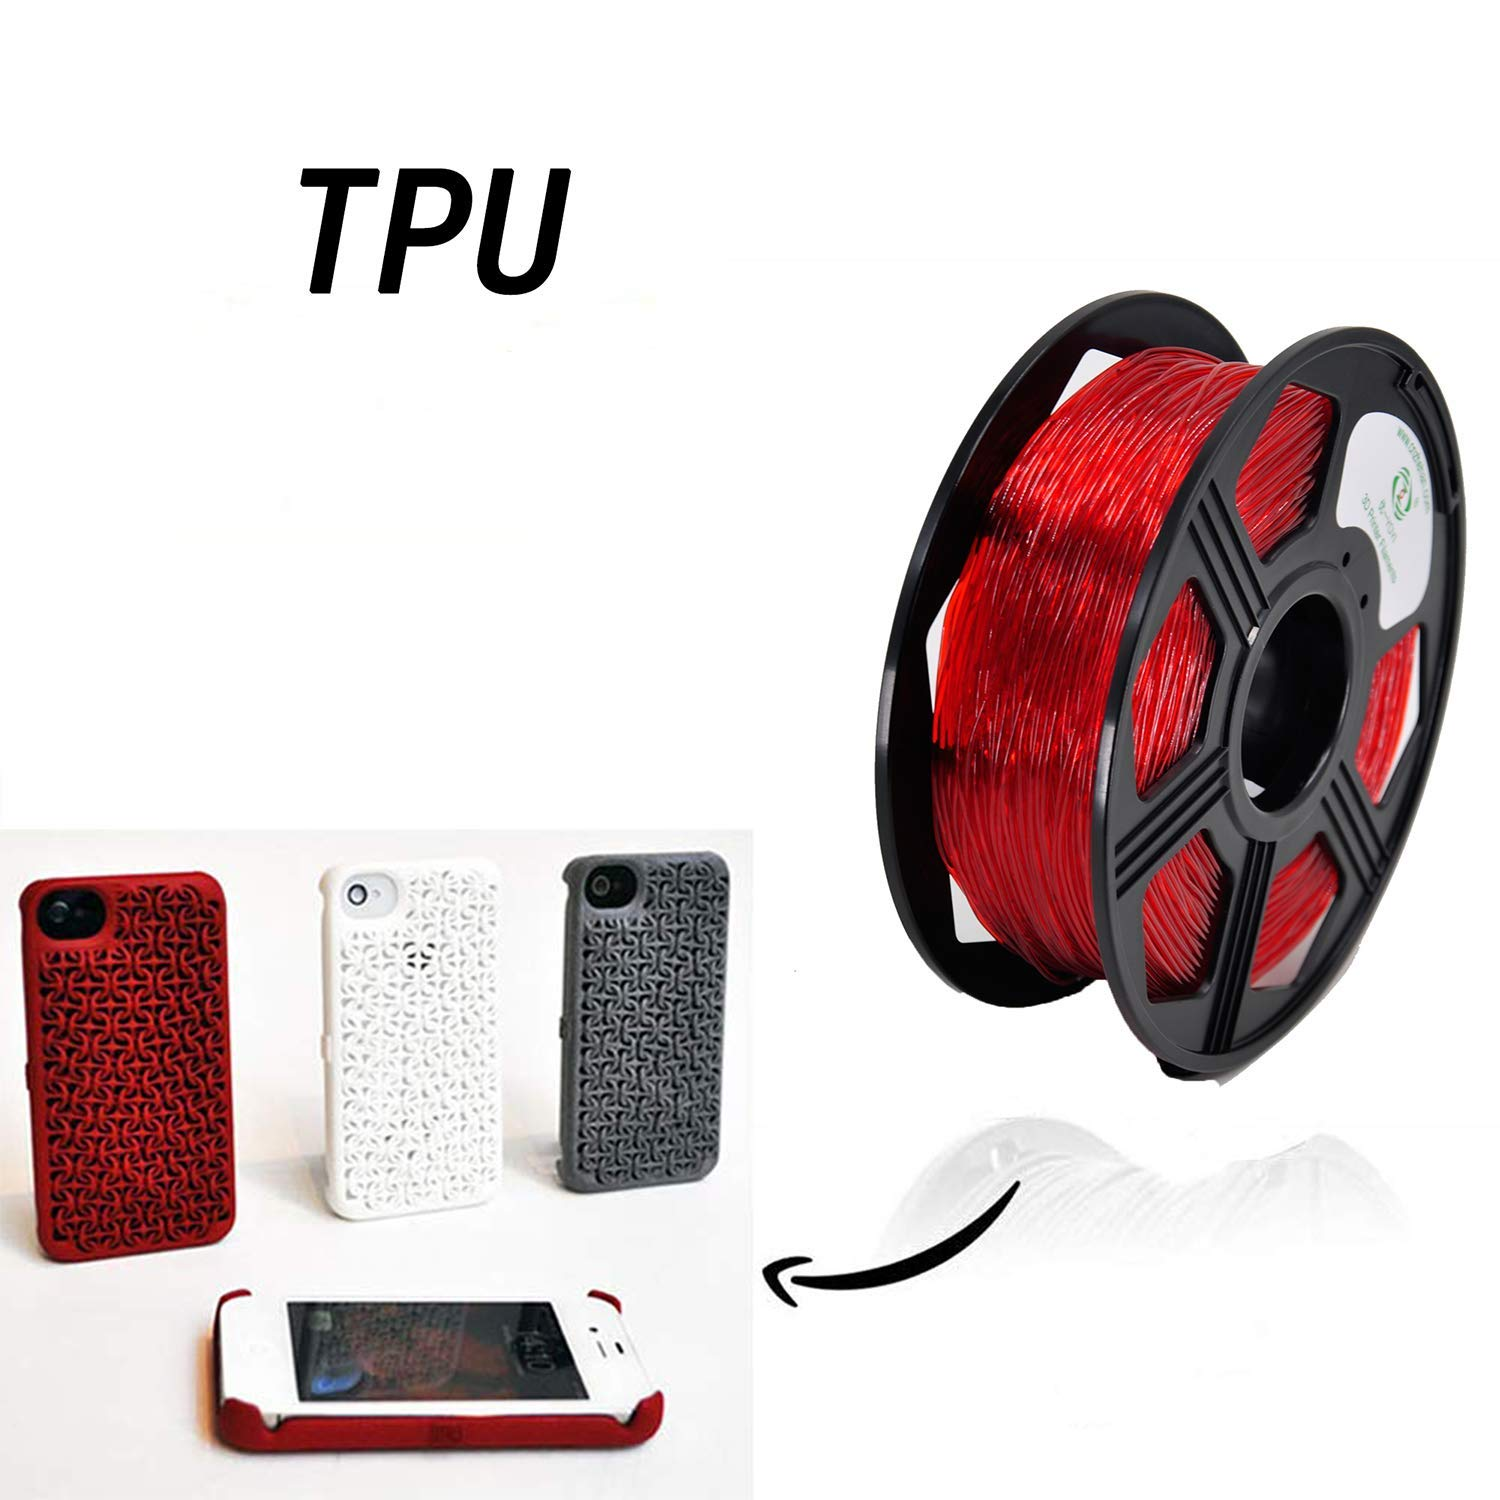 tpu applications